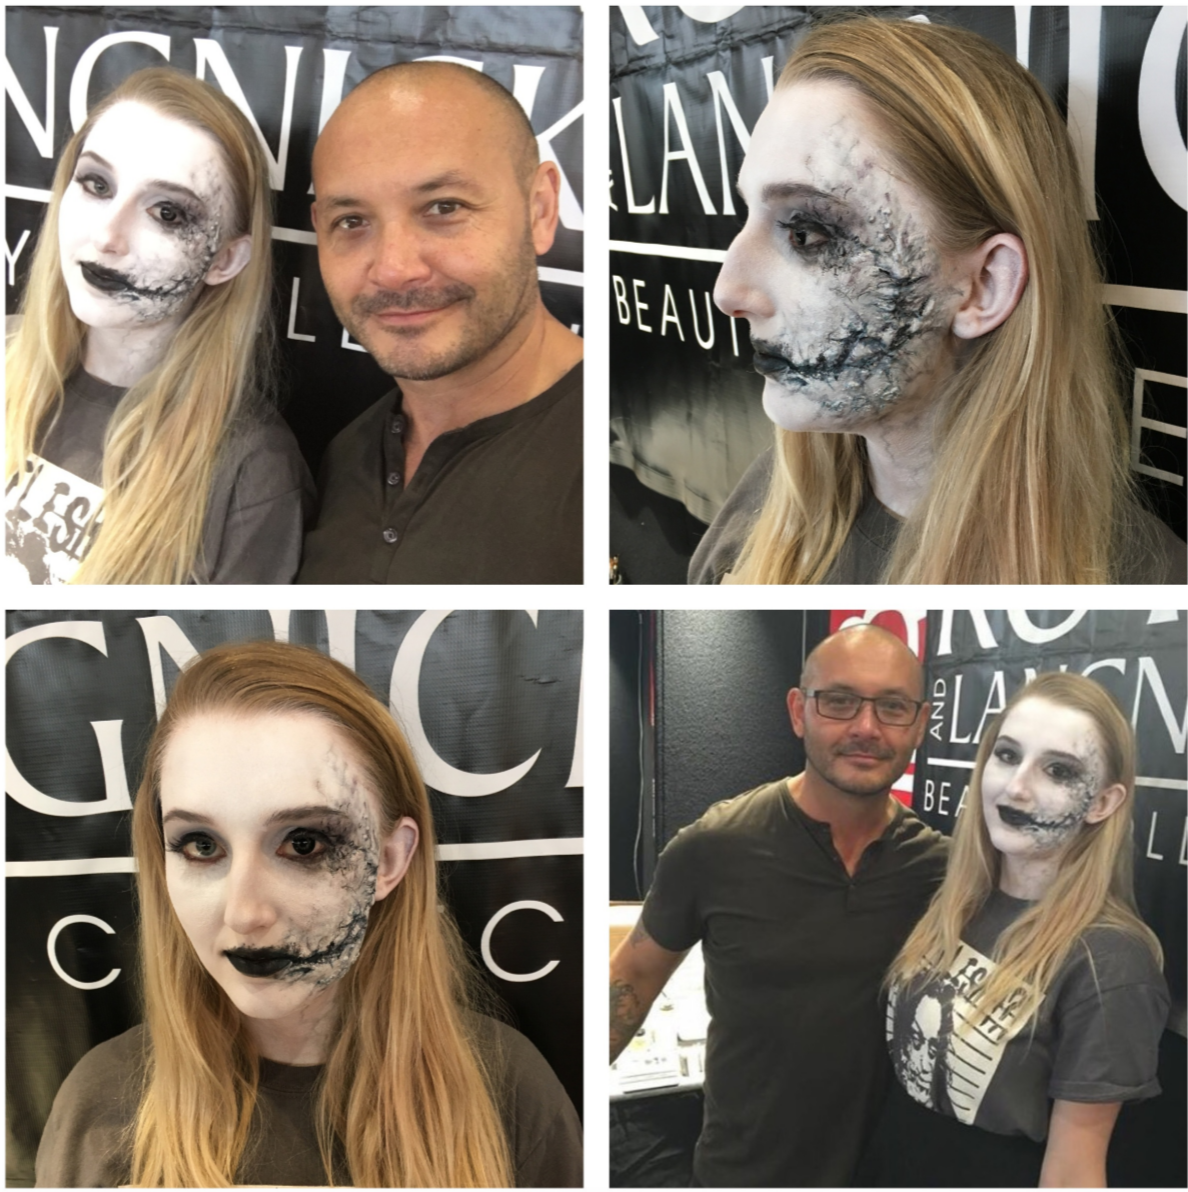 My ZomBeauty makeup done on Bonnie for Sydney IMATS 2015.....Day One.  I did this makeup using some of my Got Flesh Prosthetic Transfers for the scarring and gore. The base color was the new Ben Nye White ProColor Airbrushable makeup. The rot mottling was a mix of airbrushing and hand brush. The lip color used was Ben Nye Black Cream Makeup. Lashes were used in the eye makeup. For a little detail and cherry on top, Bonnie brought in her oversized black contact lenses, just for her left eye.